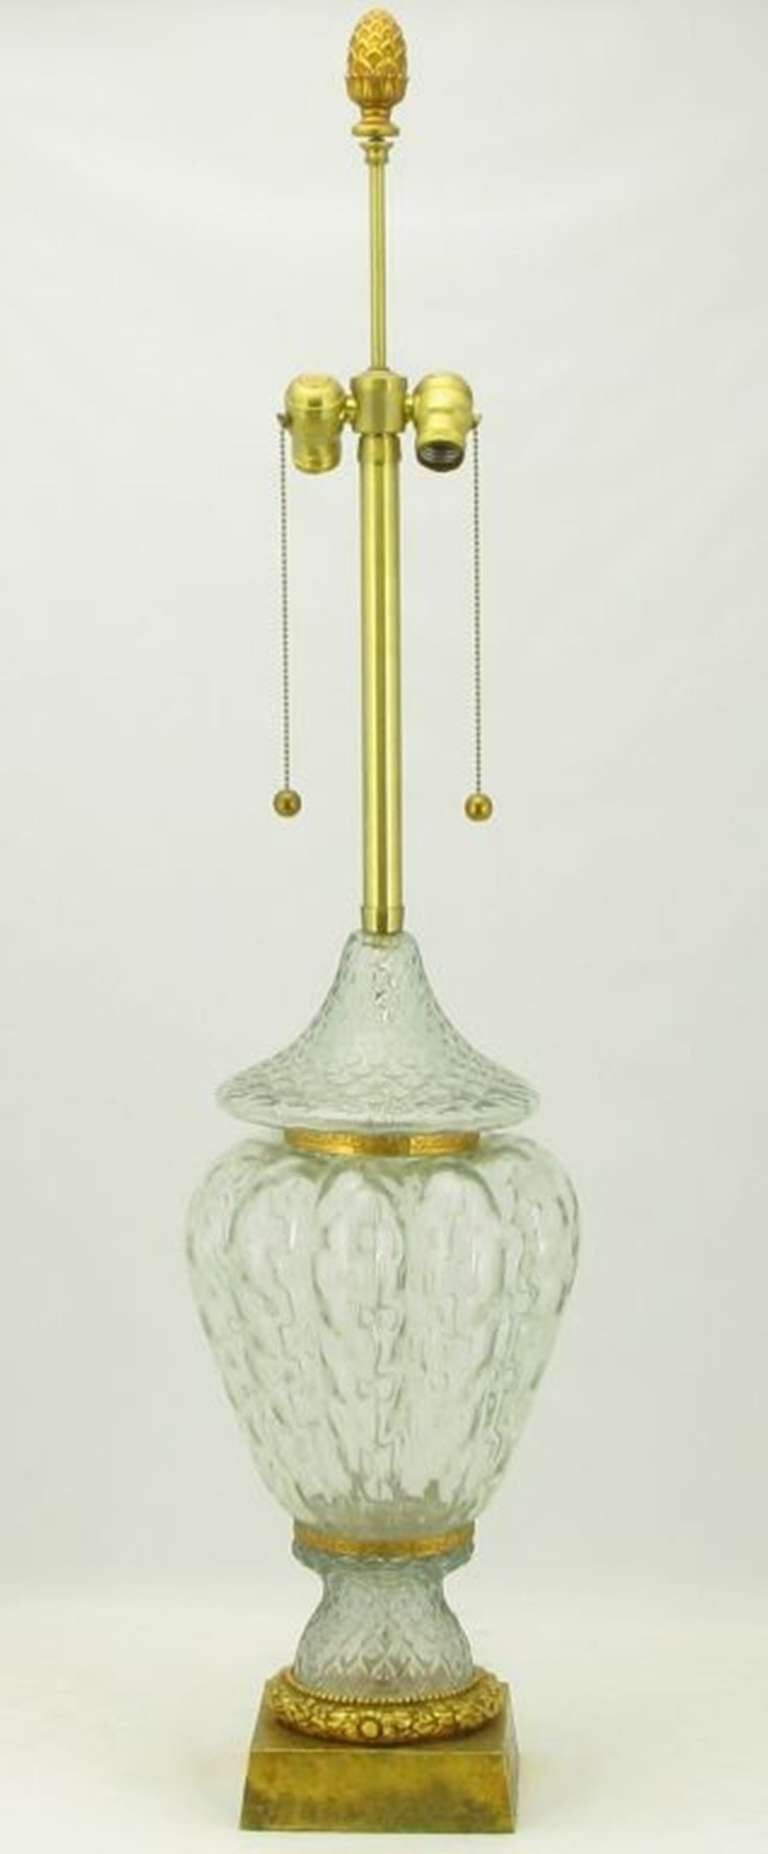 Marbro Crystal Vase Table Lamp With Brass Trim For Sale at